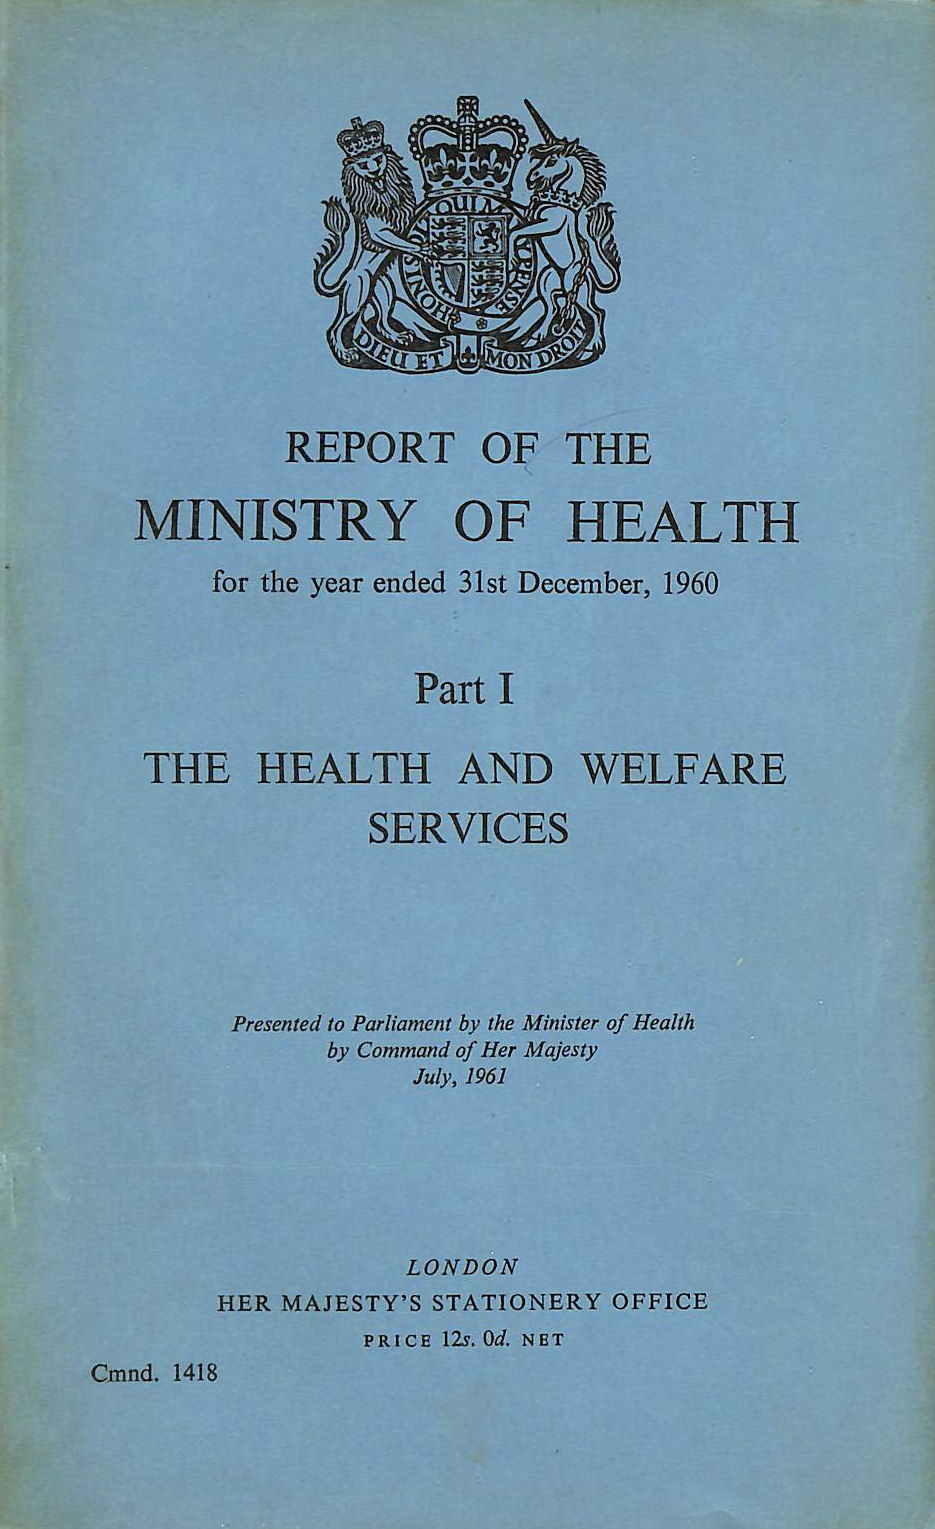 Image for Report of the Ministry of Health, Part I. 1960